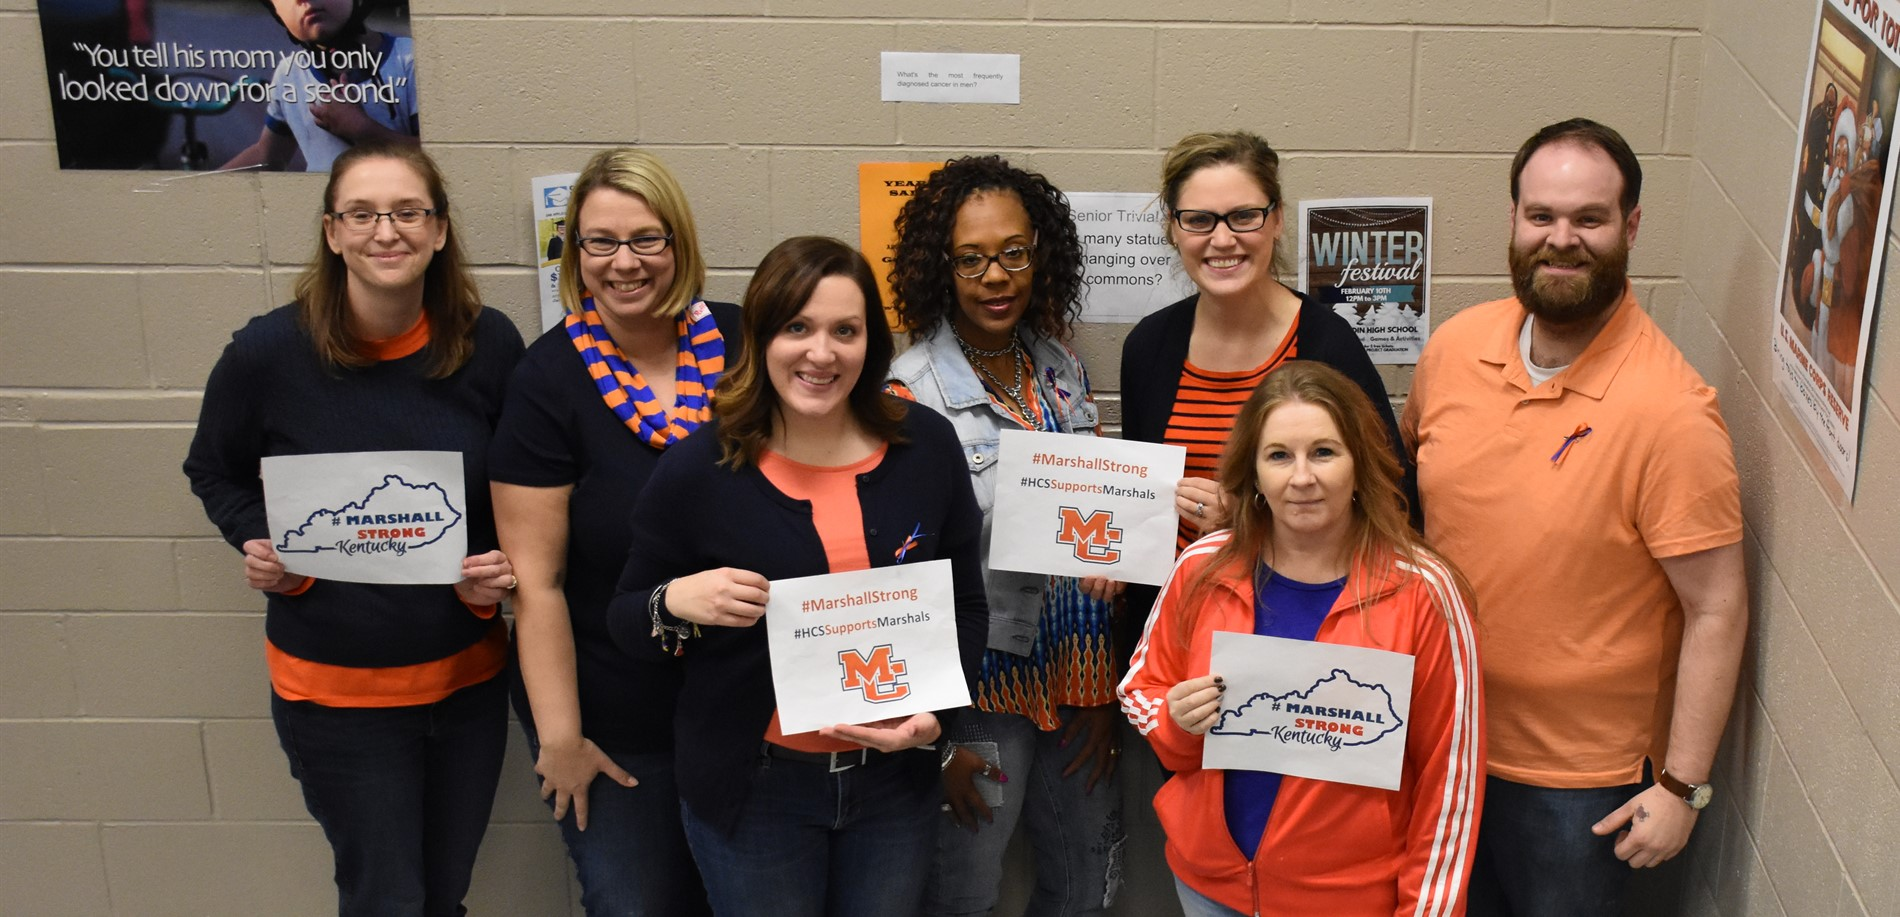 JHHS staff support Marshall County High School #Marshallstrong